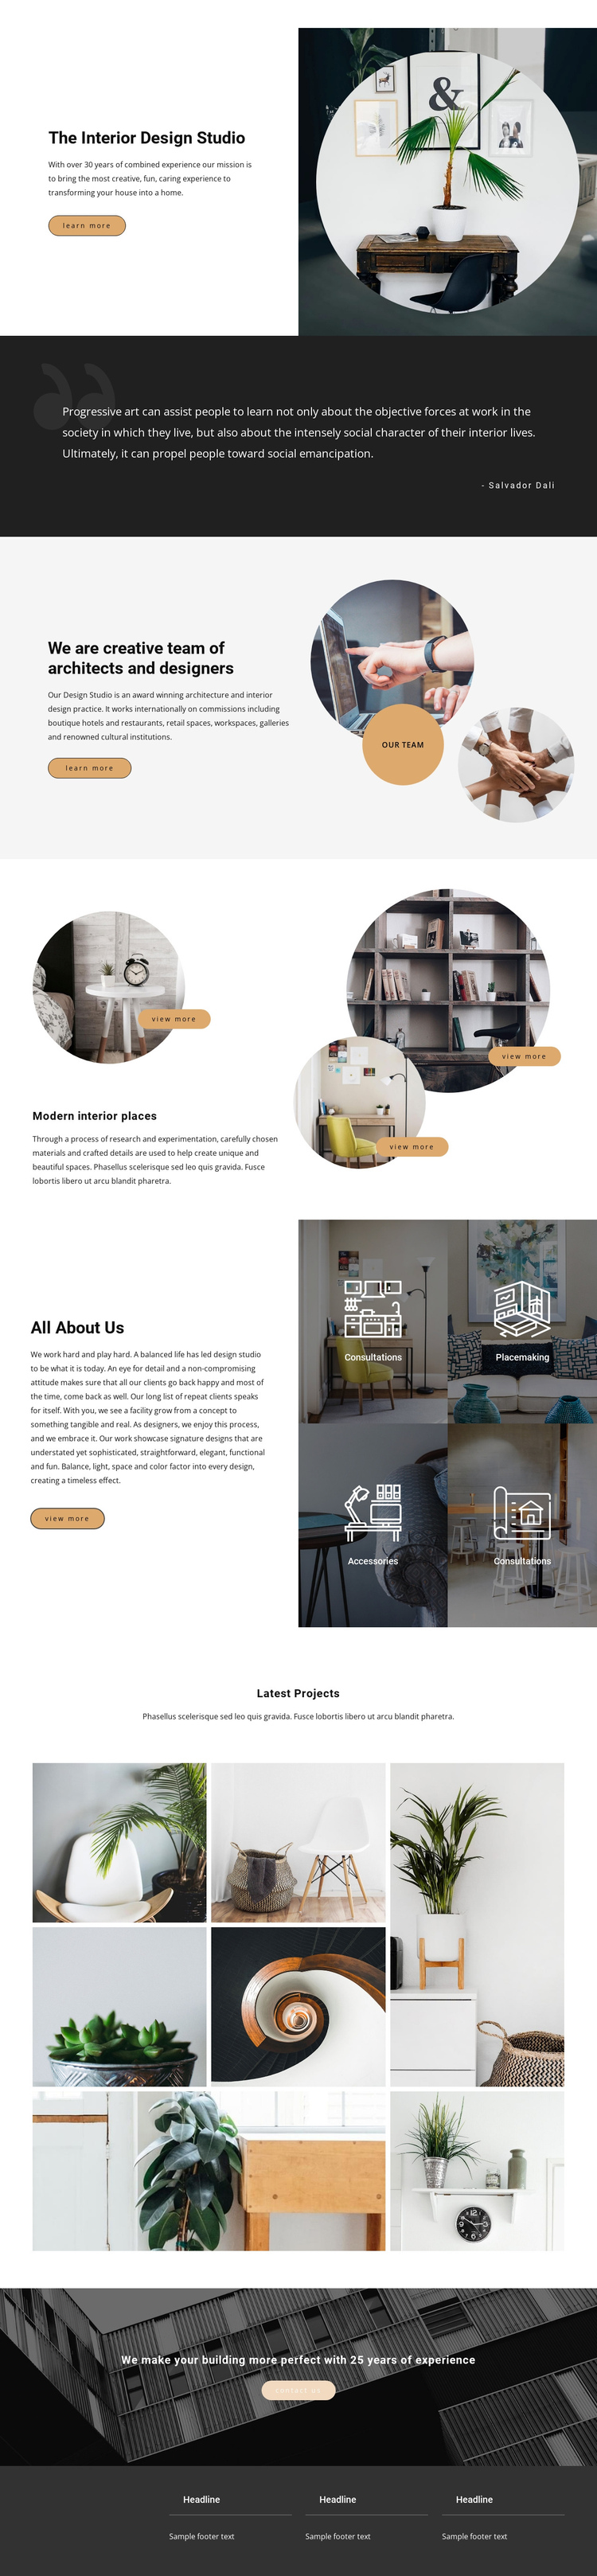 Interior Design Studio Website Builder Software